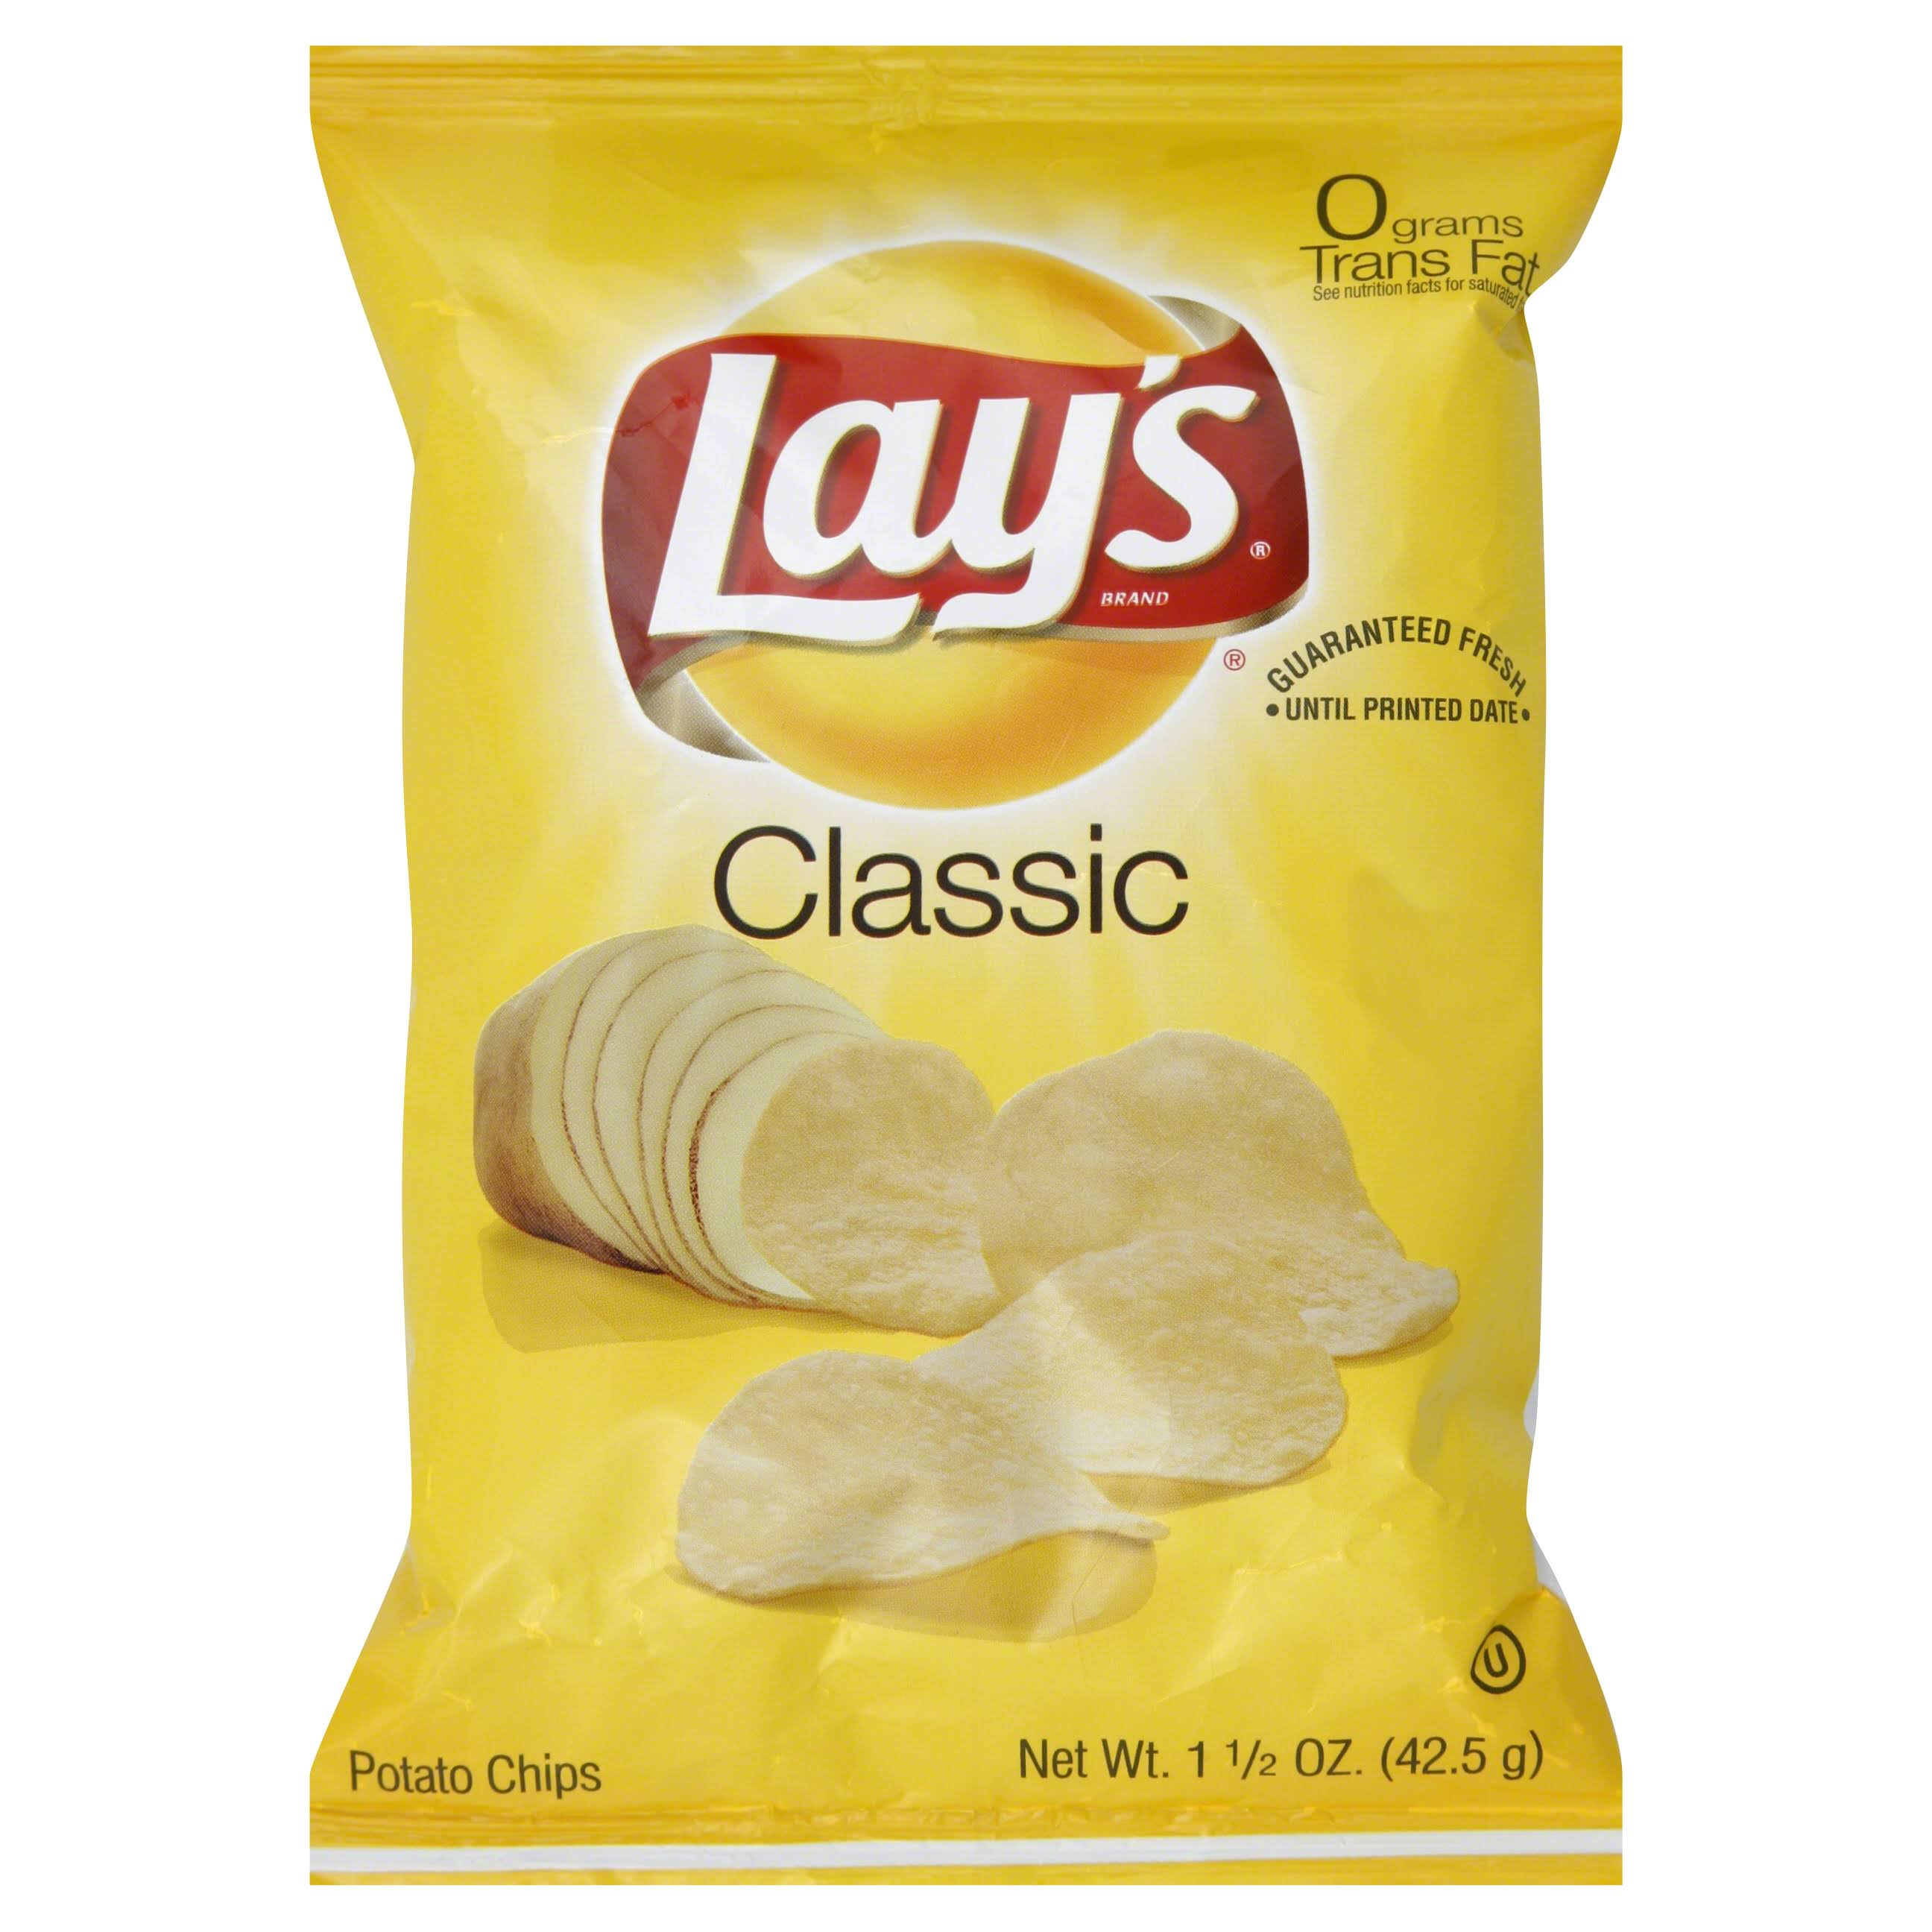 Lay's Potato Chips - Classic, 1.5oz